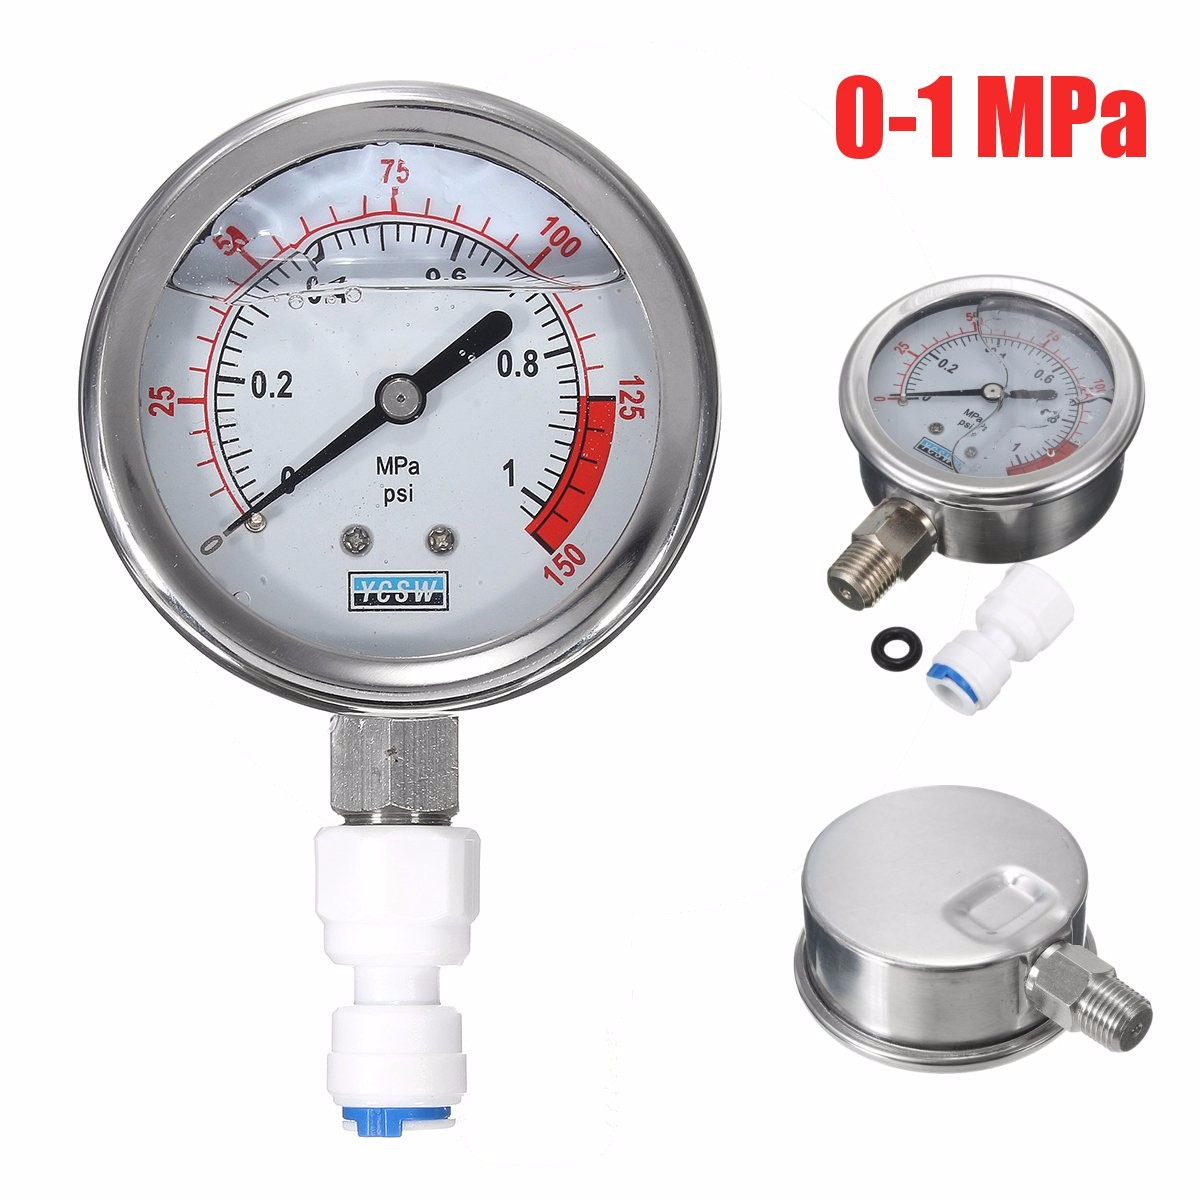 0-1MPa 0-150Psi Oil Filled Water Hydraulic Pressure Gauge Dial Meter Tool G1/2